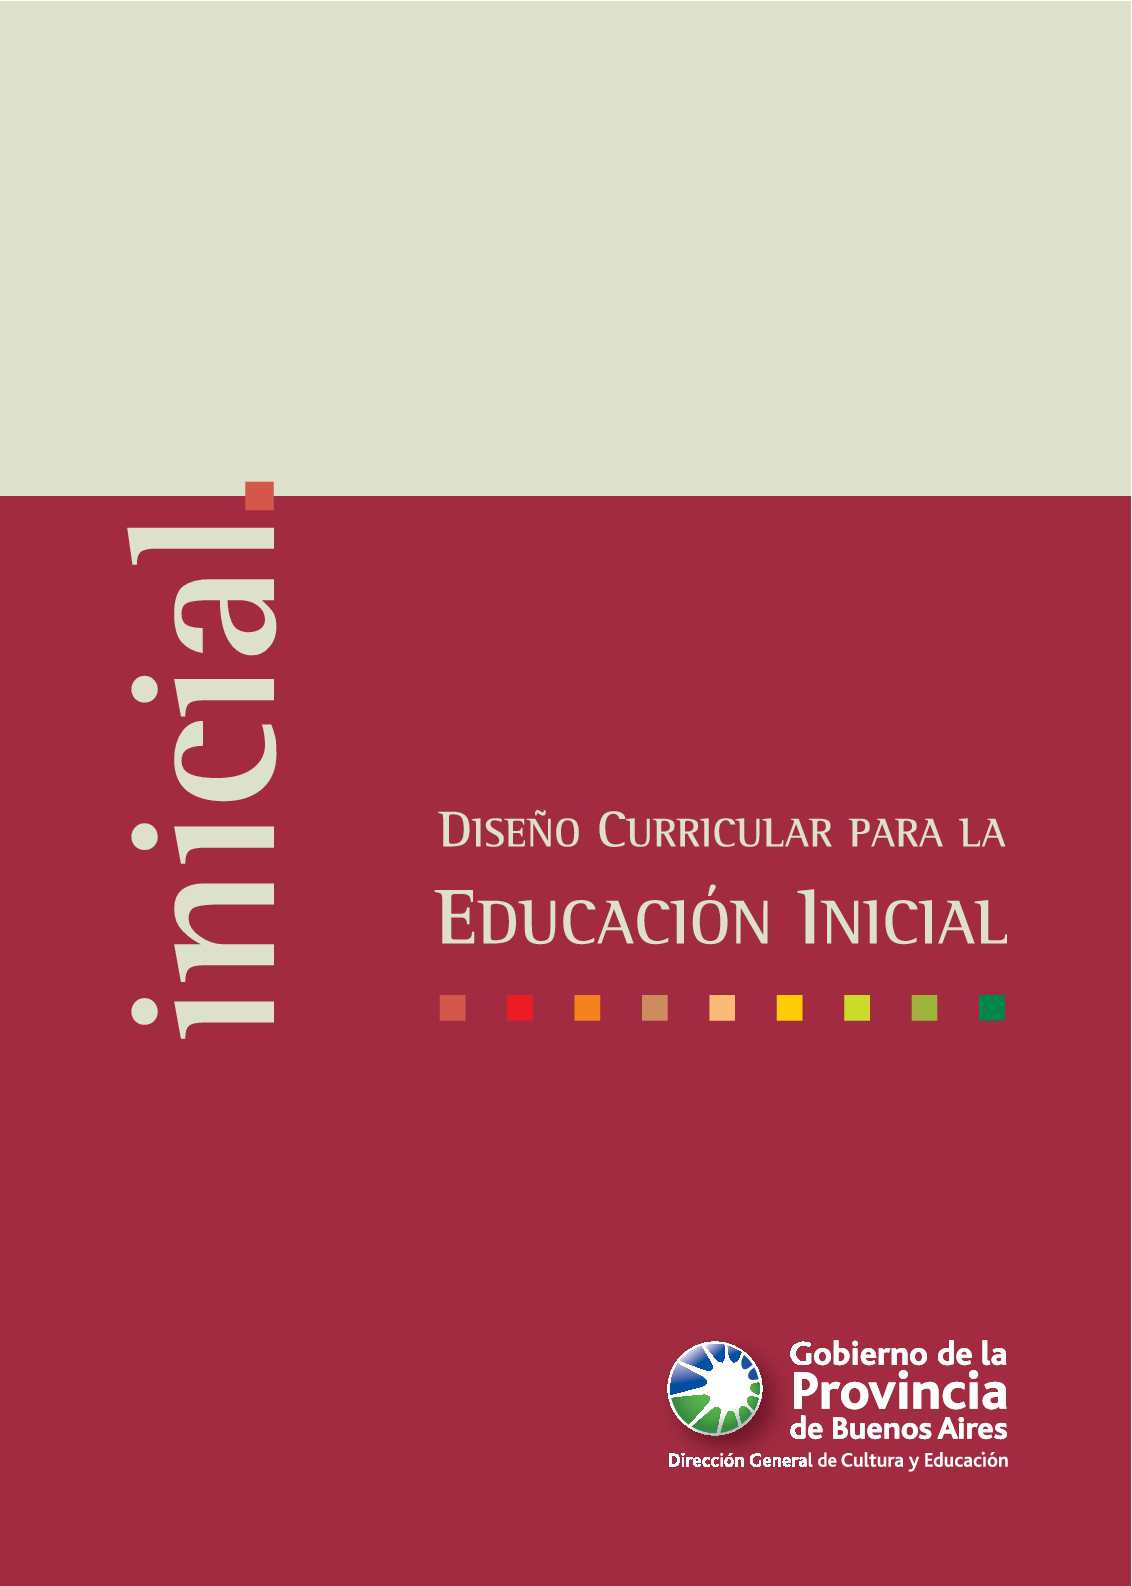 Calam o dise o curricular de nivel inicial for Curriculum de nivel inicial